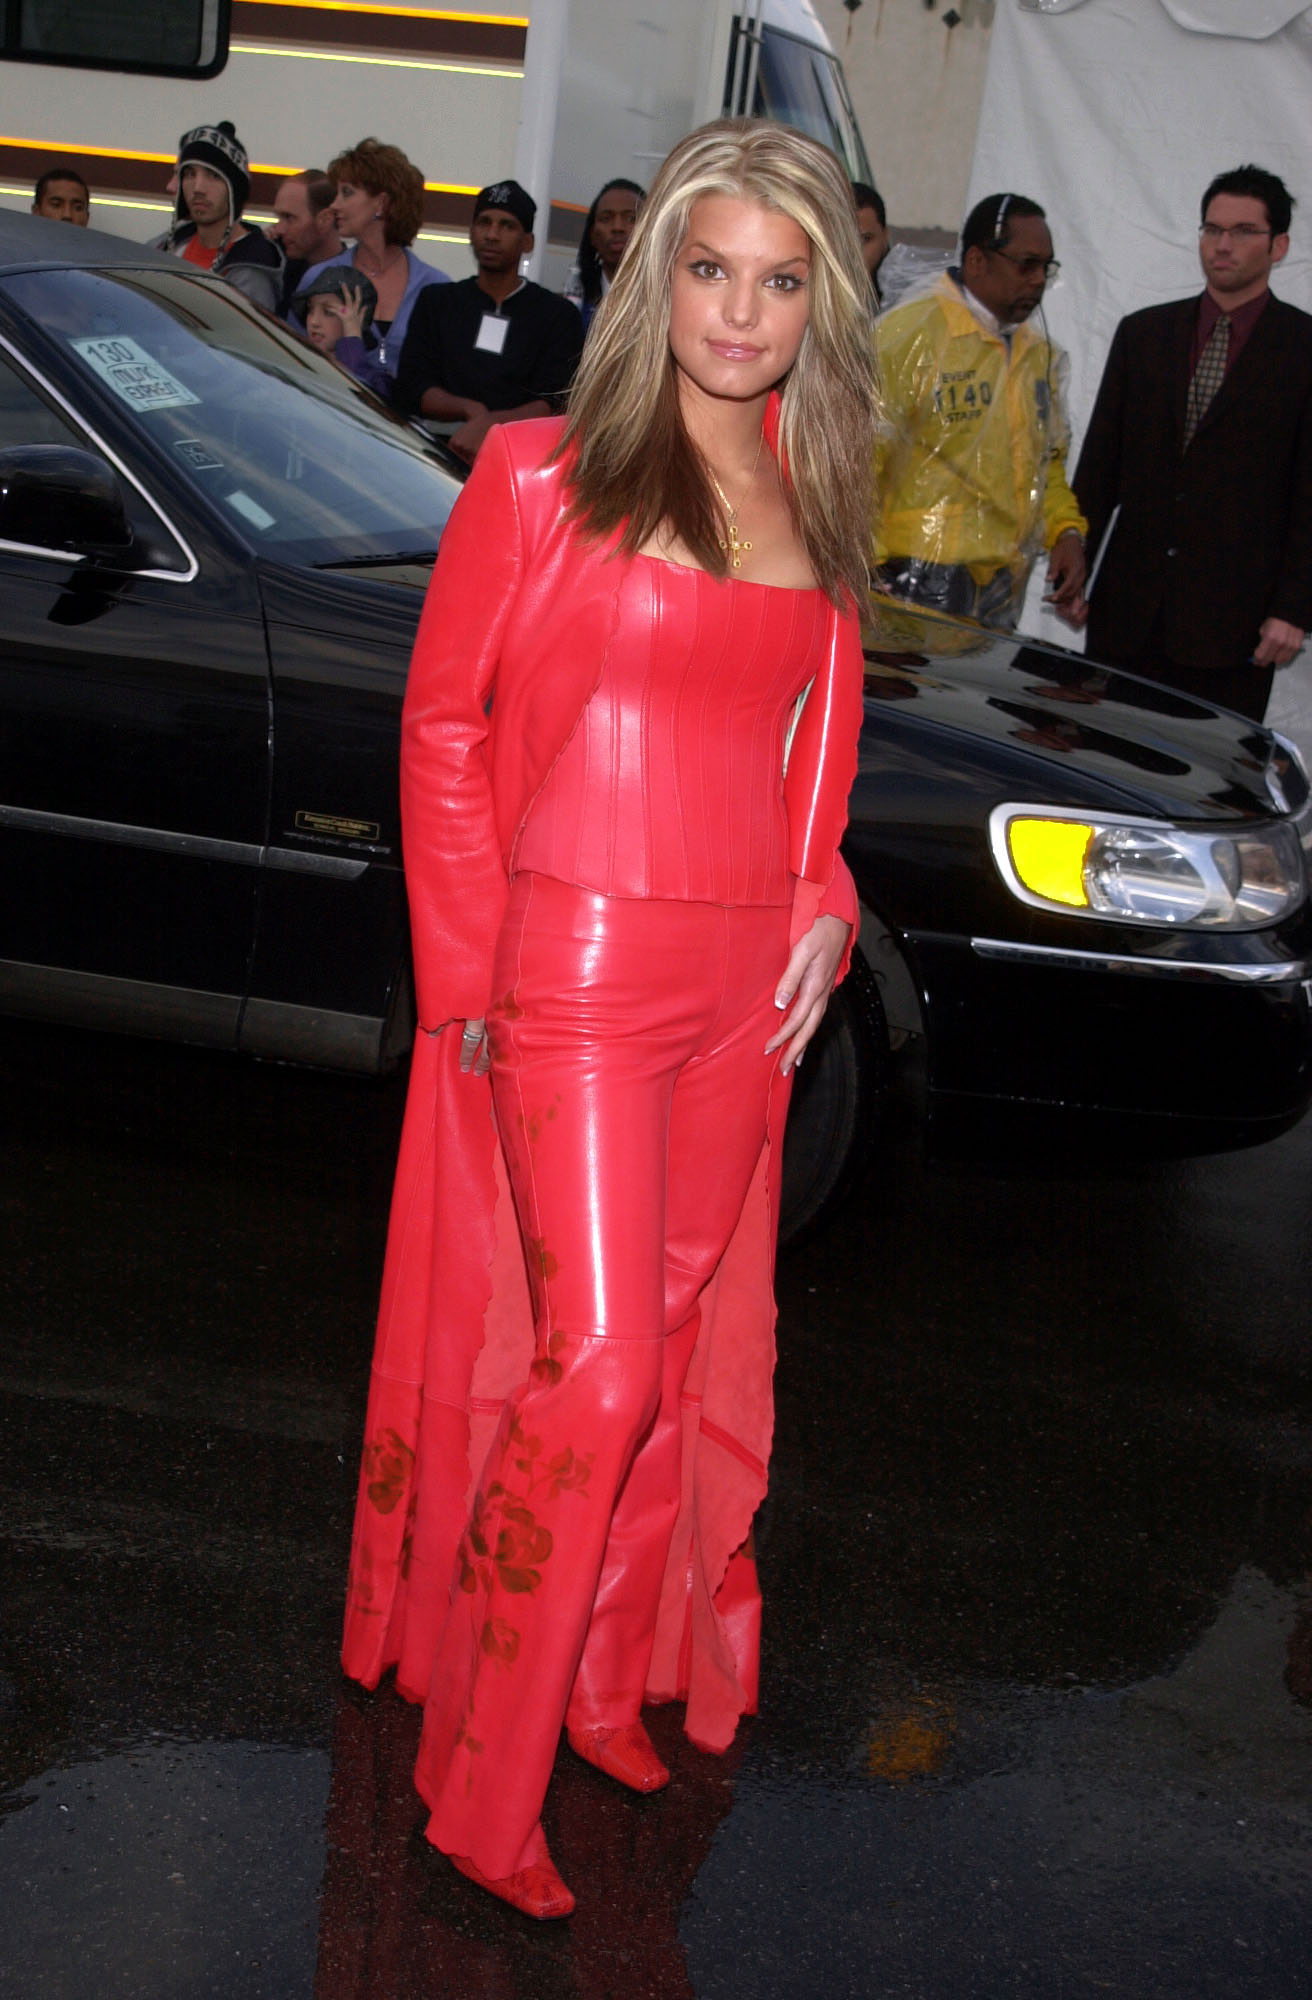 Jessica Simpson attends the 28th annual American Music Awards, held at the Shrine Auditorium in Los Angeles, California, on Jan. 8, 2001.